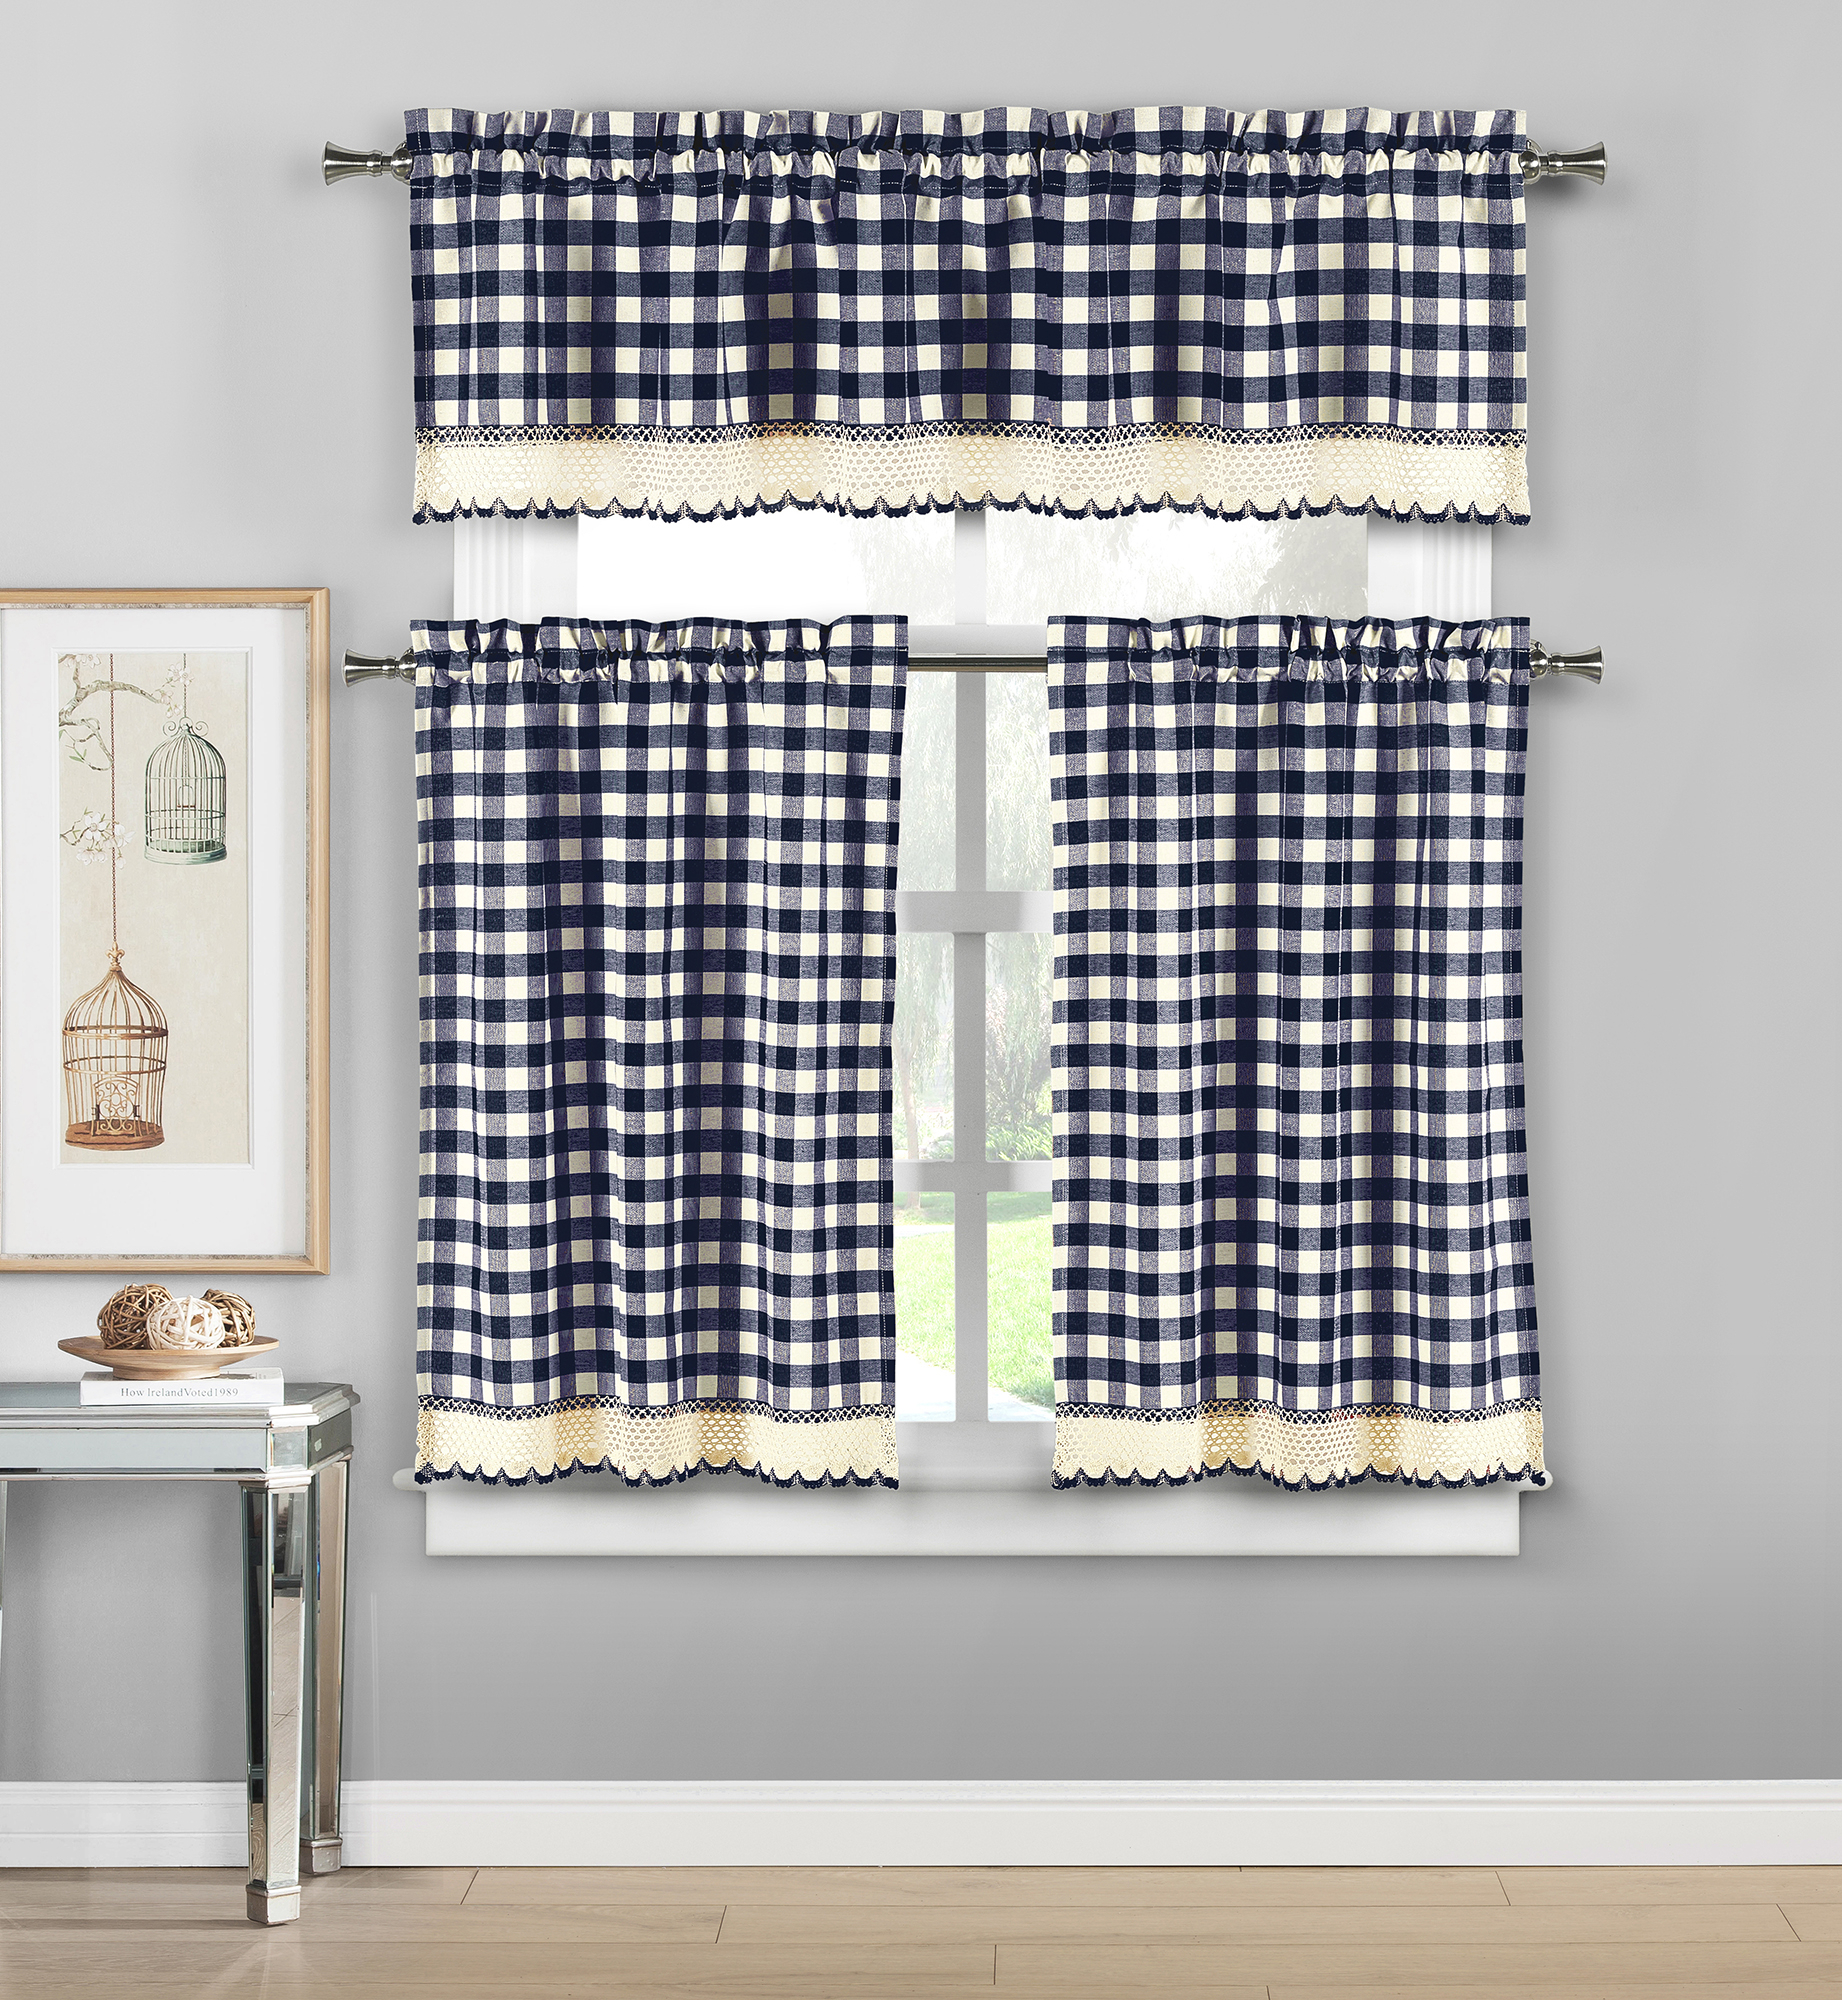 Details About Plaid Checkered 100% Cotton 3 Piece Set Window Kitchen Curtain Tier & Valance Within Cotton Blend Classic Checkered Decorative Window Curtains (View 13 of 20)